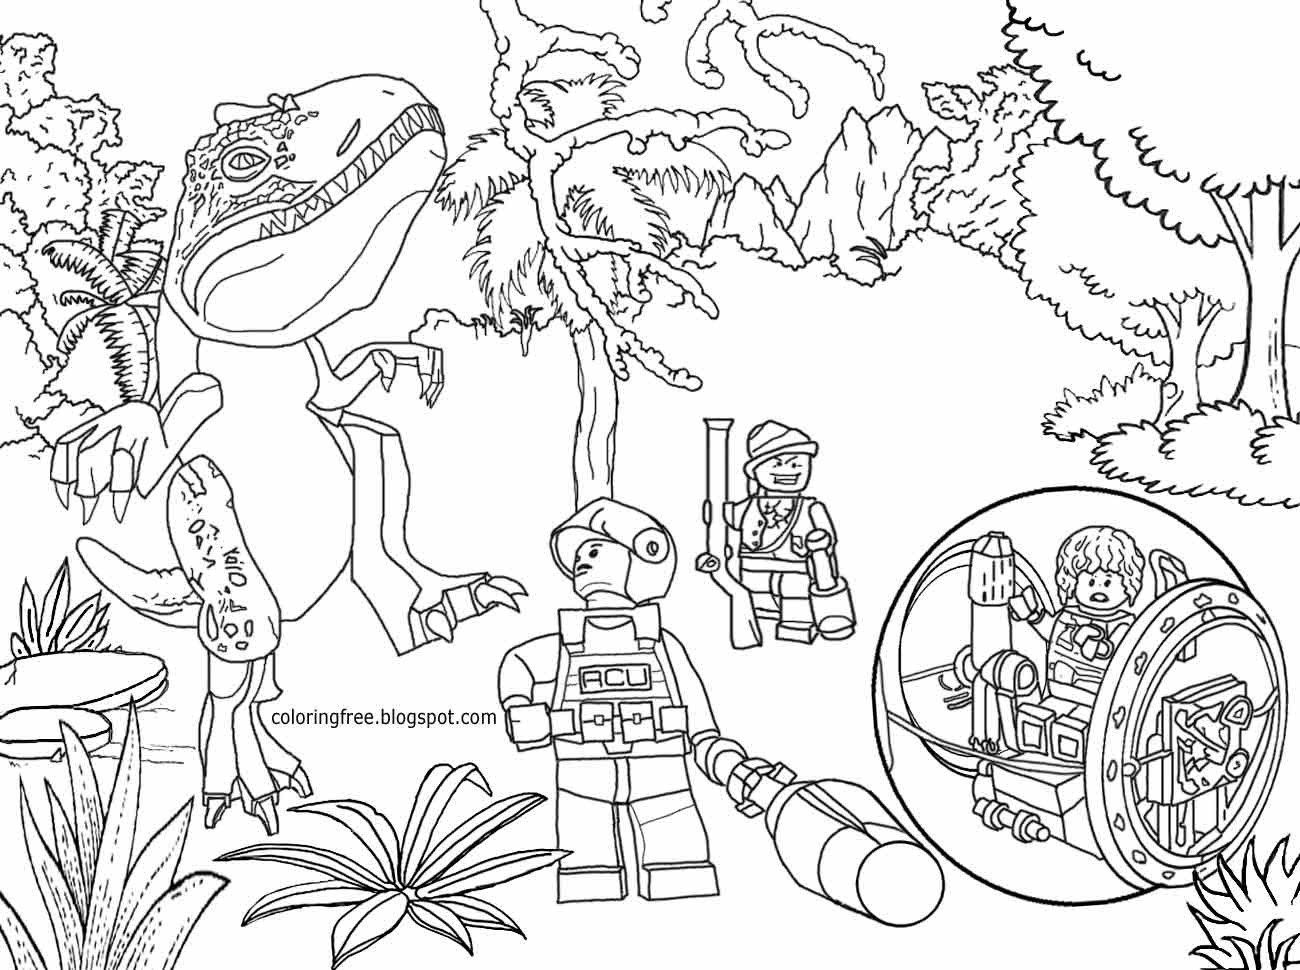 Jurassic Park Coloring Pages Unique Coloring Pages Lego Jurassic World Game Codes Thet Ps4 All Weapo Dinosaur Coloring Pages Coloring Pages Lego Coloring Pages